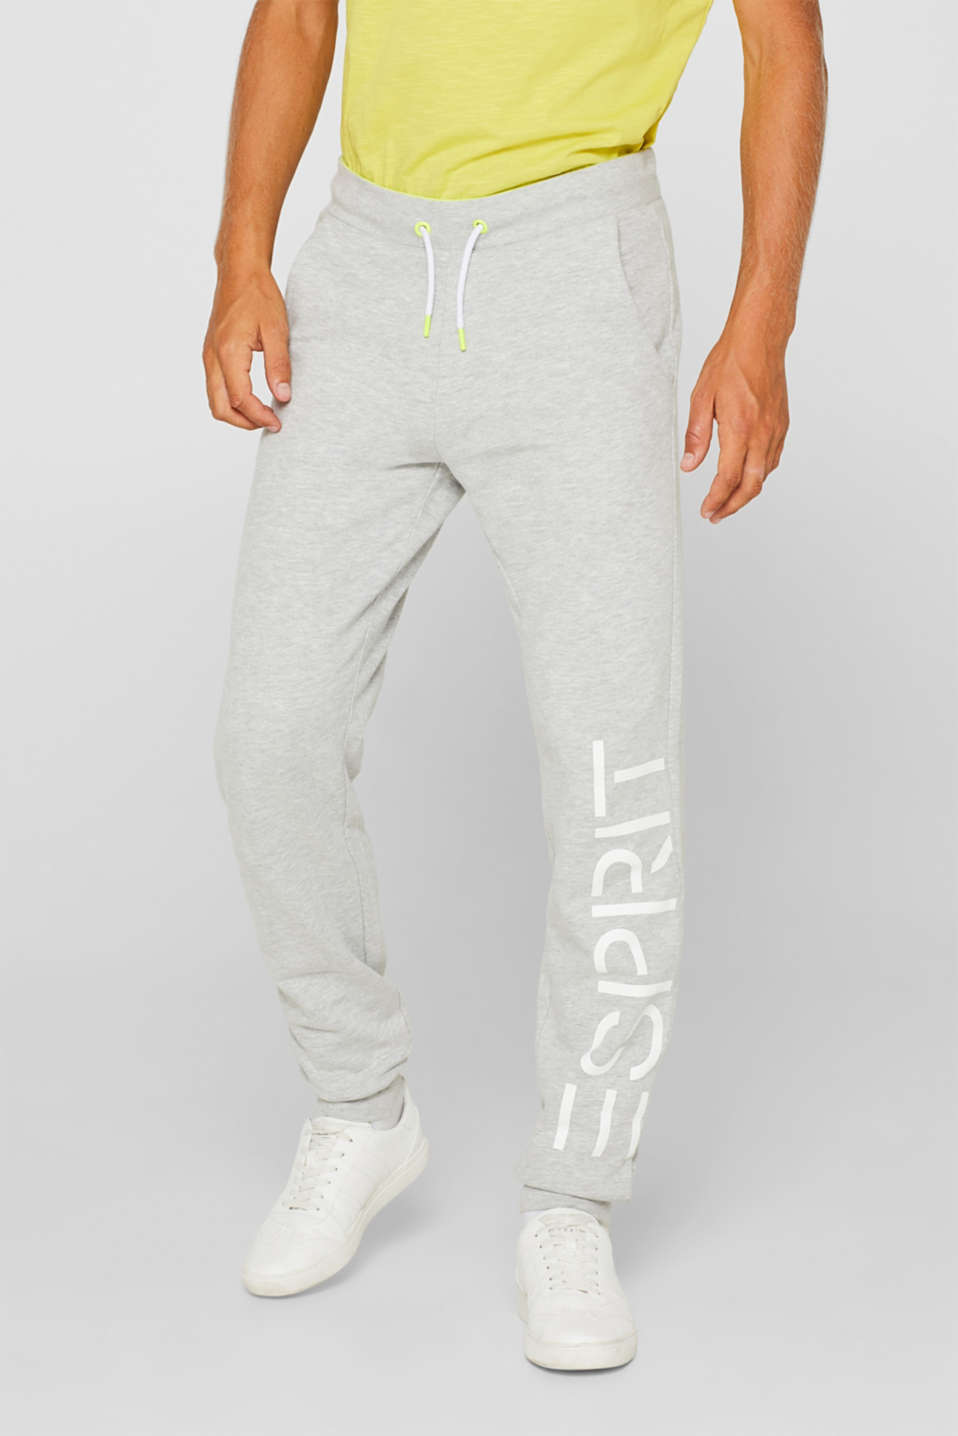 Esprit - Sweatbroek met logoprint